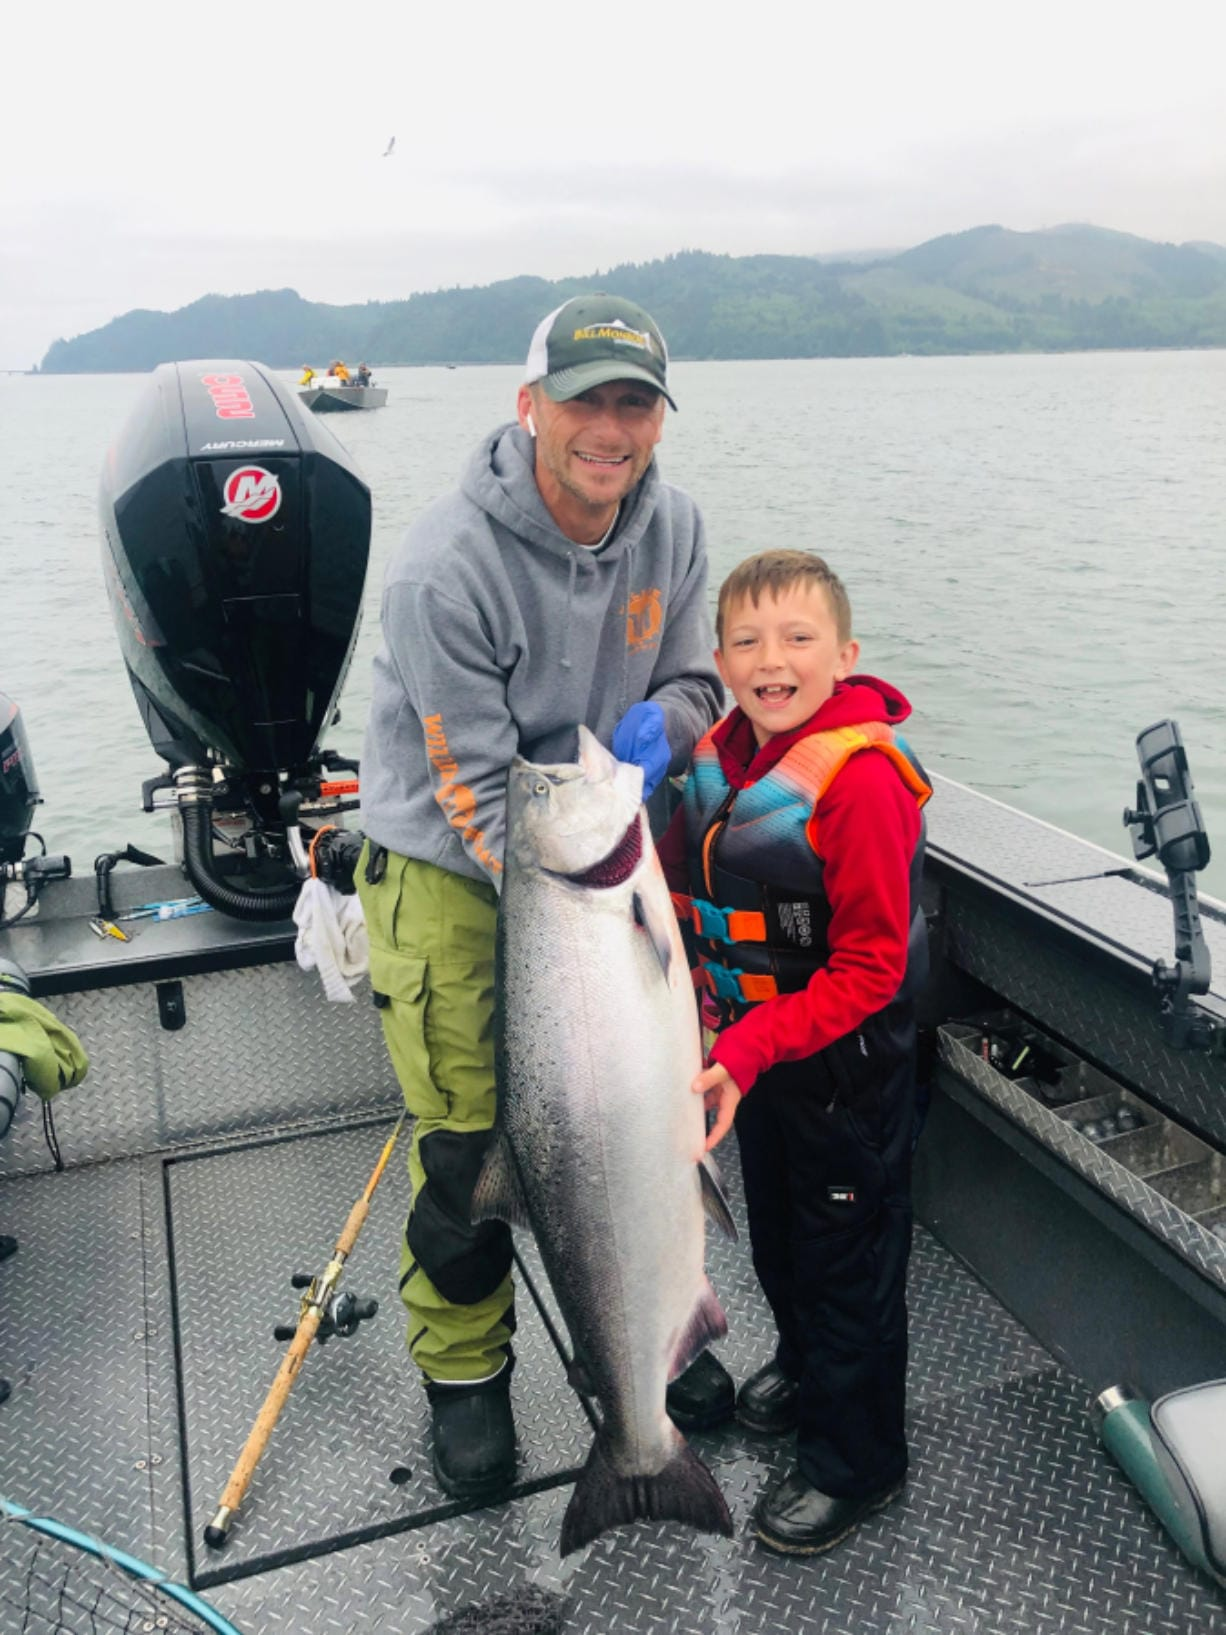 Anglers are eagerly awaiting the start of the Buoy Ten fishery at the mouth of the Columbia River. The season usually opens on August 1, but with poor expected salmon returns for 2020, the season was delayed until August 14.